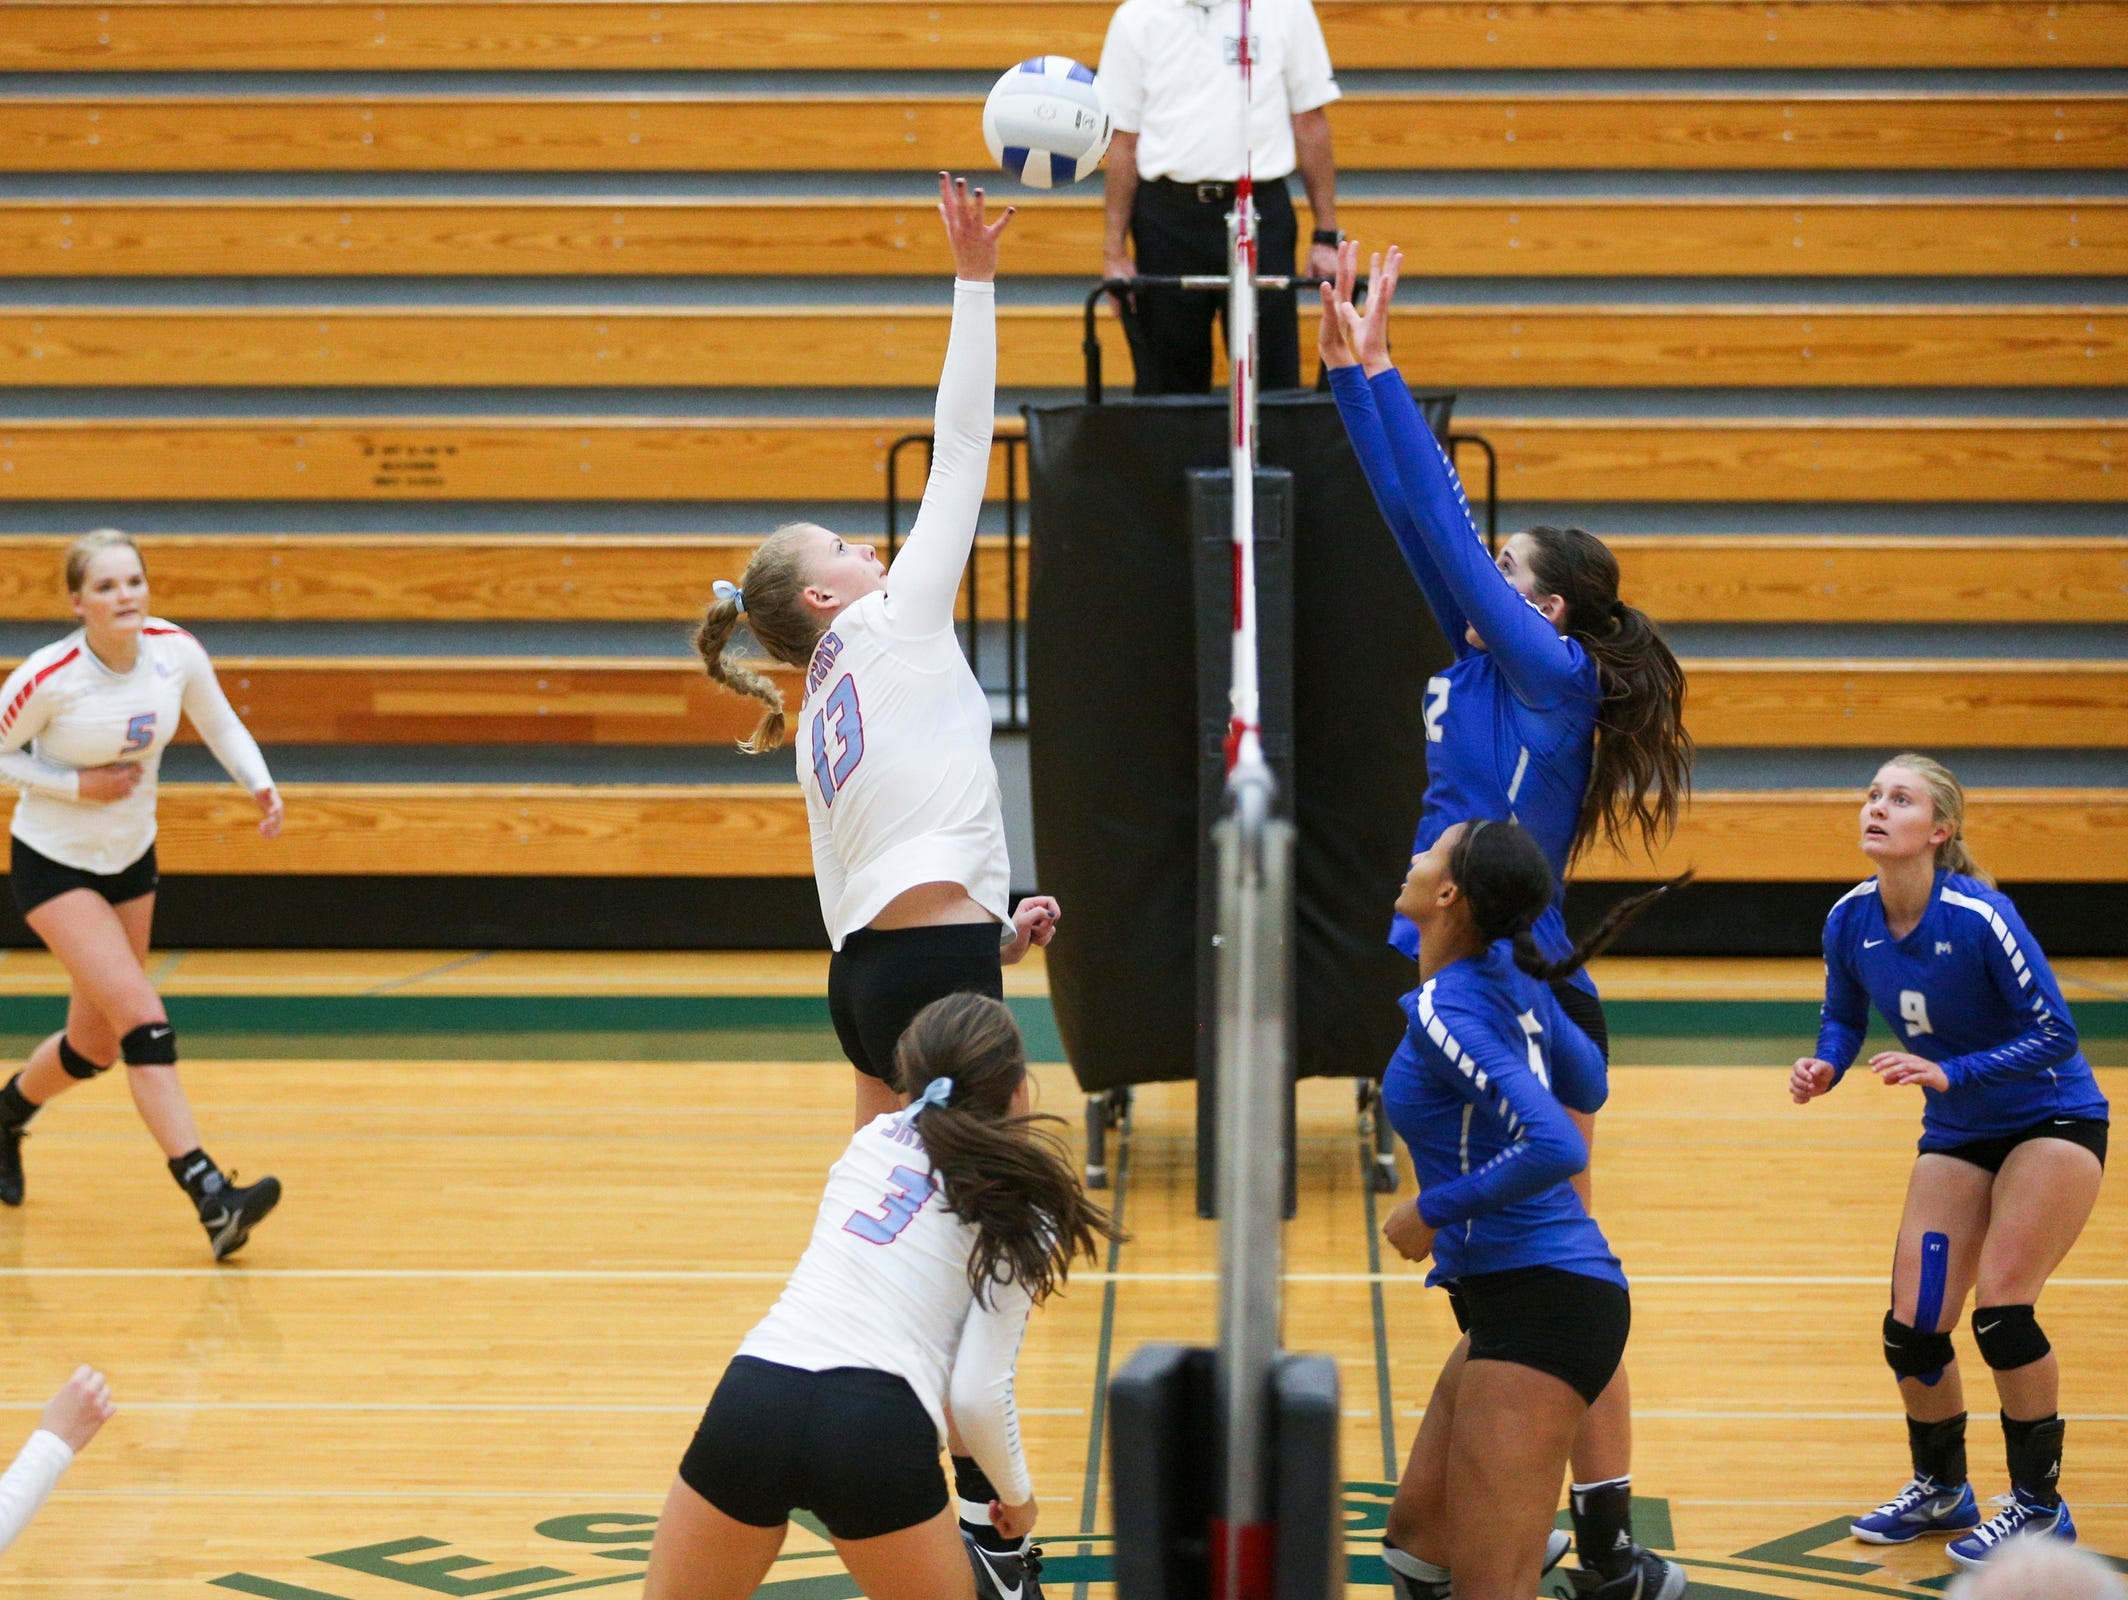 South Salem's Chloe Elmore (13) hits the ball over the net in a game on Tuesday, Sept. 6, 2016, at West Salem High School. The South Salem Saxons won the match-up 3-0.